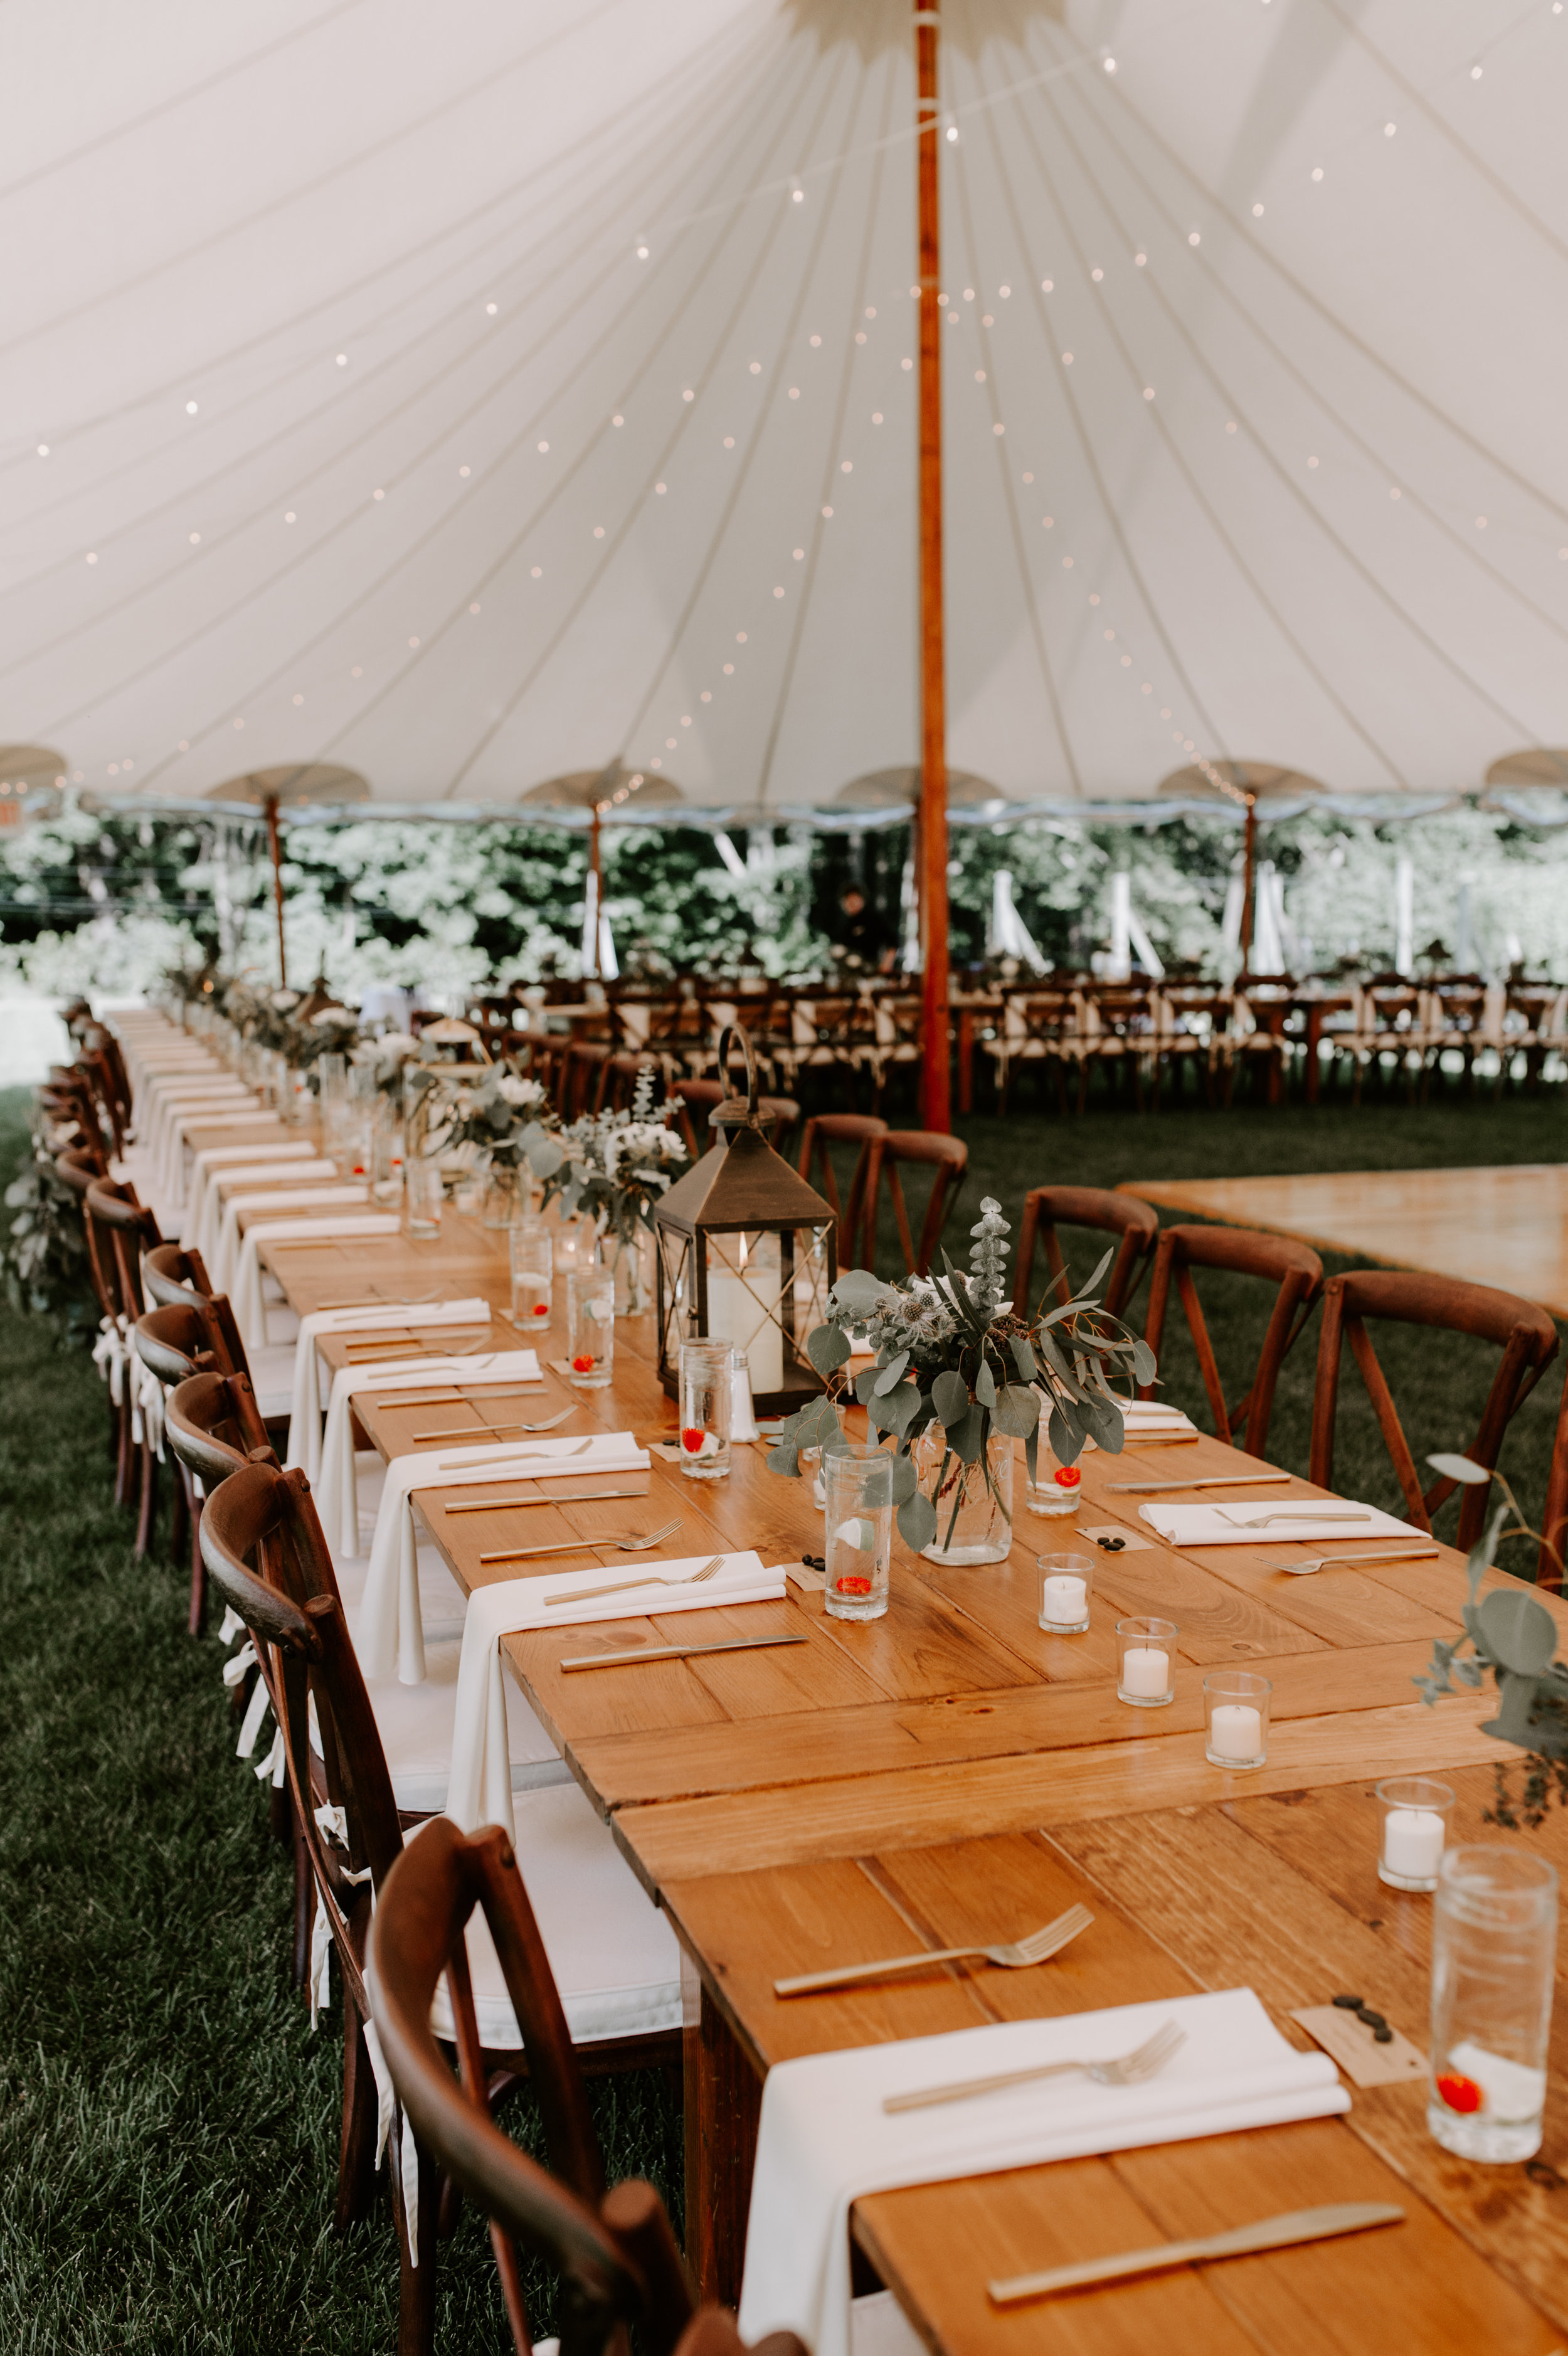 Sperry Sailcloth Tent - For larger receptions, we offer high-quality event tents, lighting, and rentals.